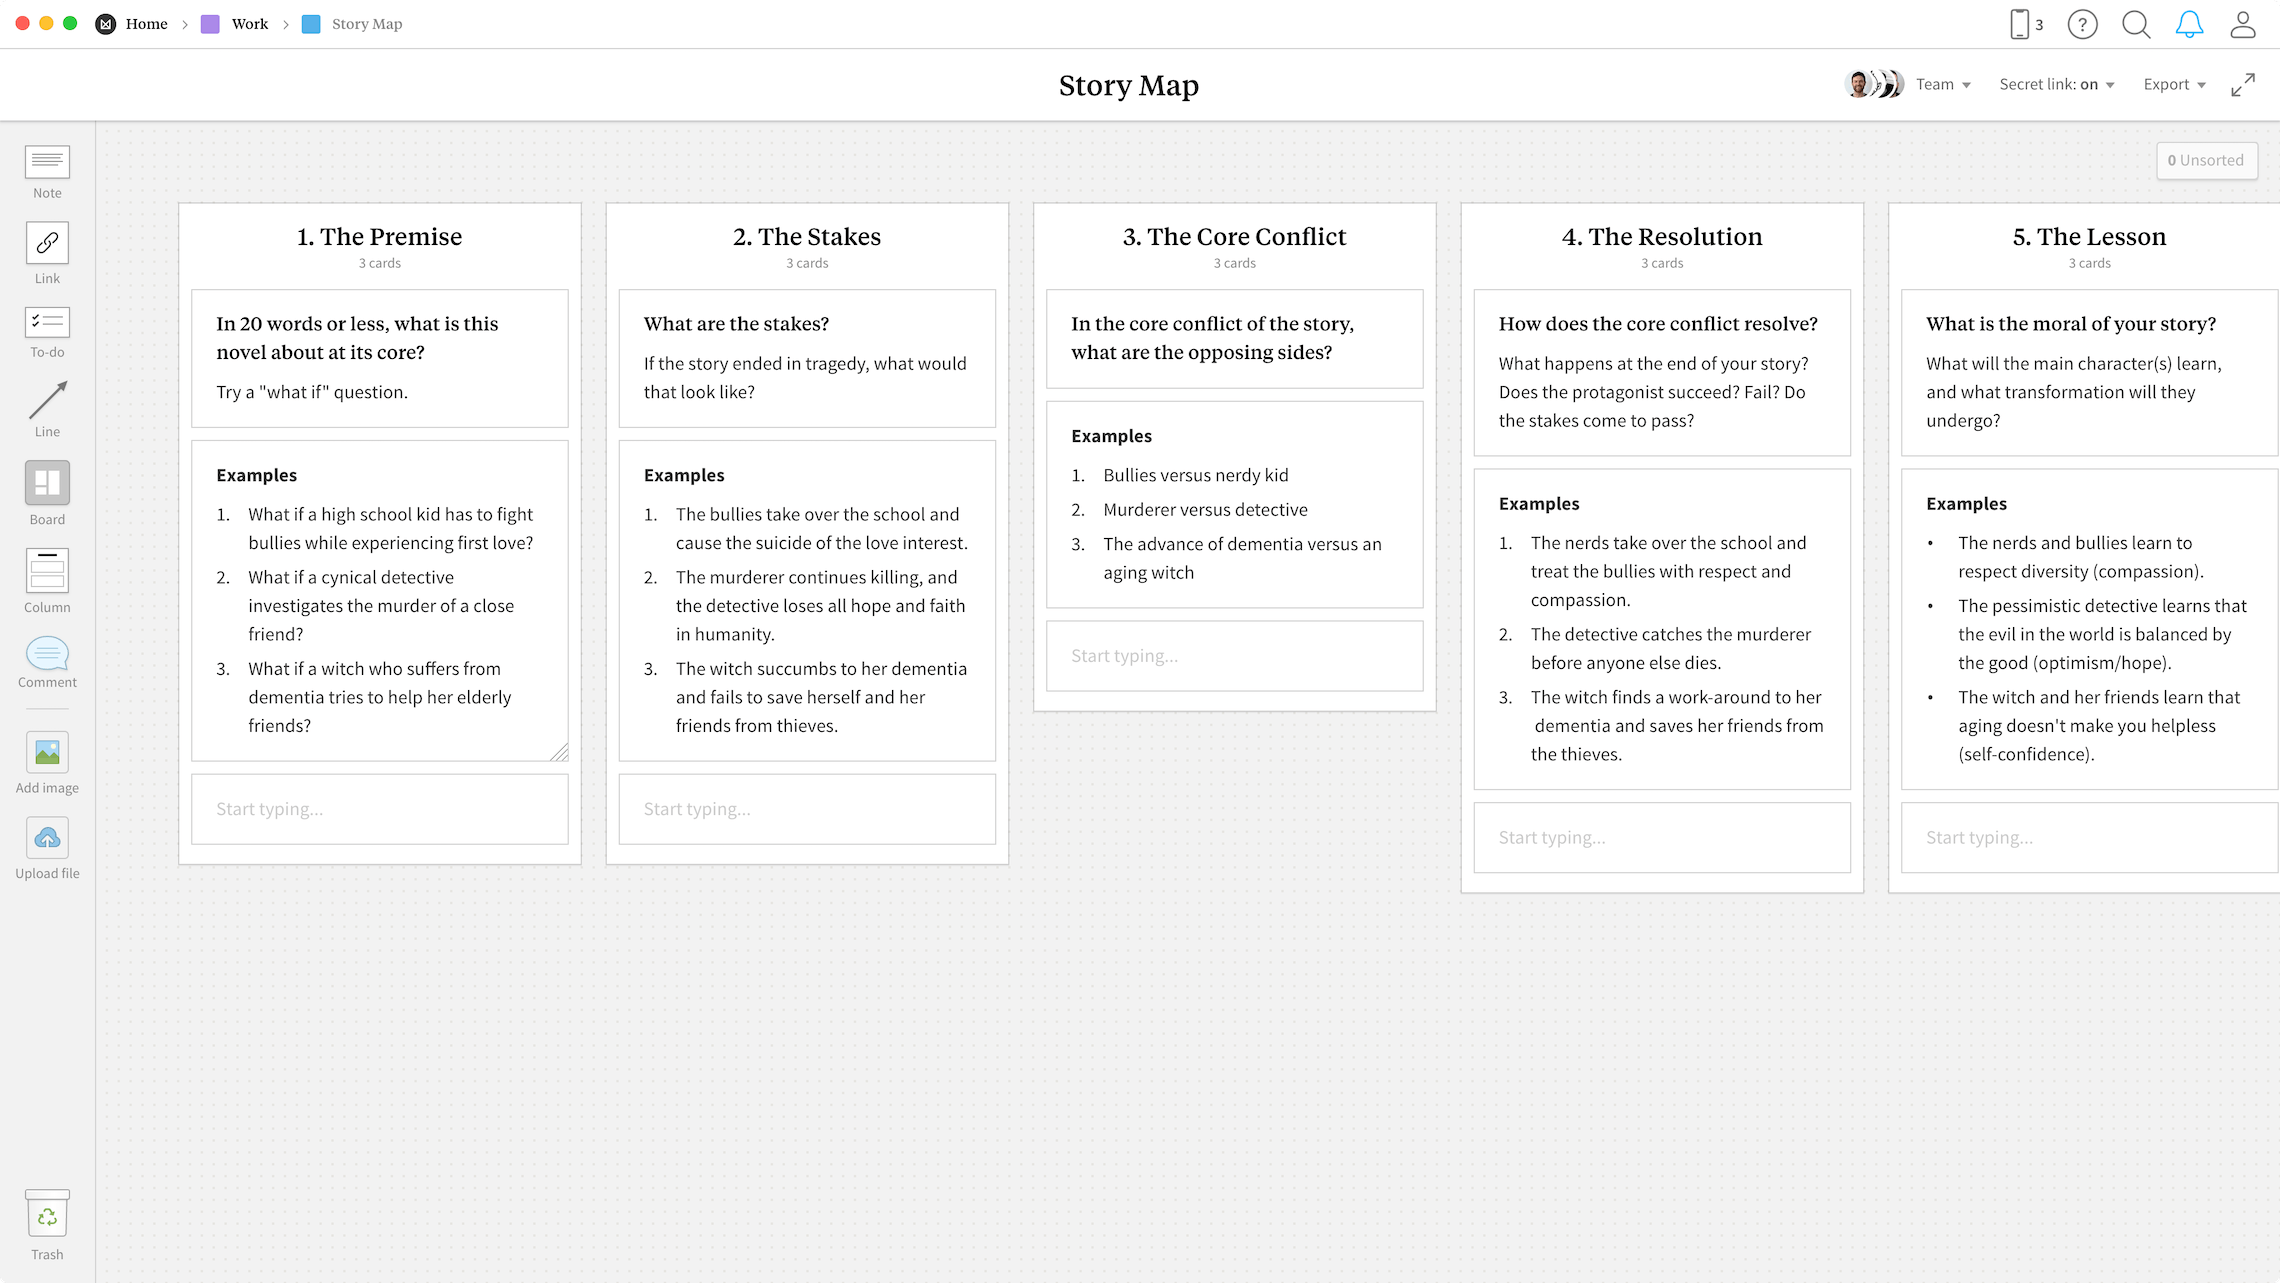 Story Map Template, within the Milanote app